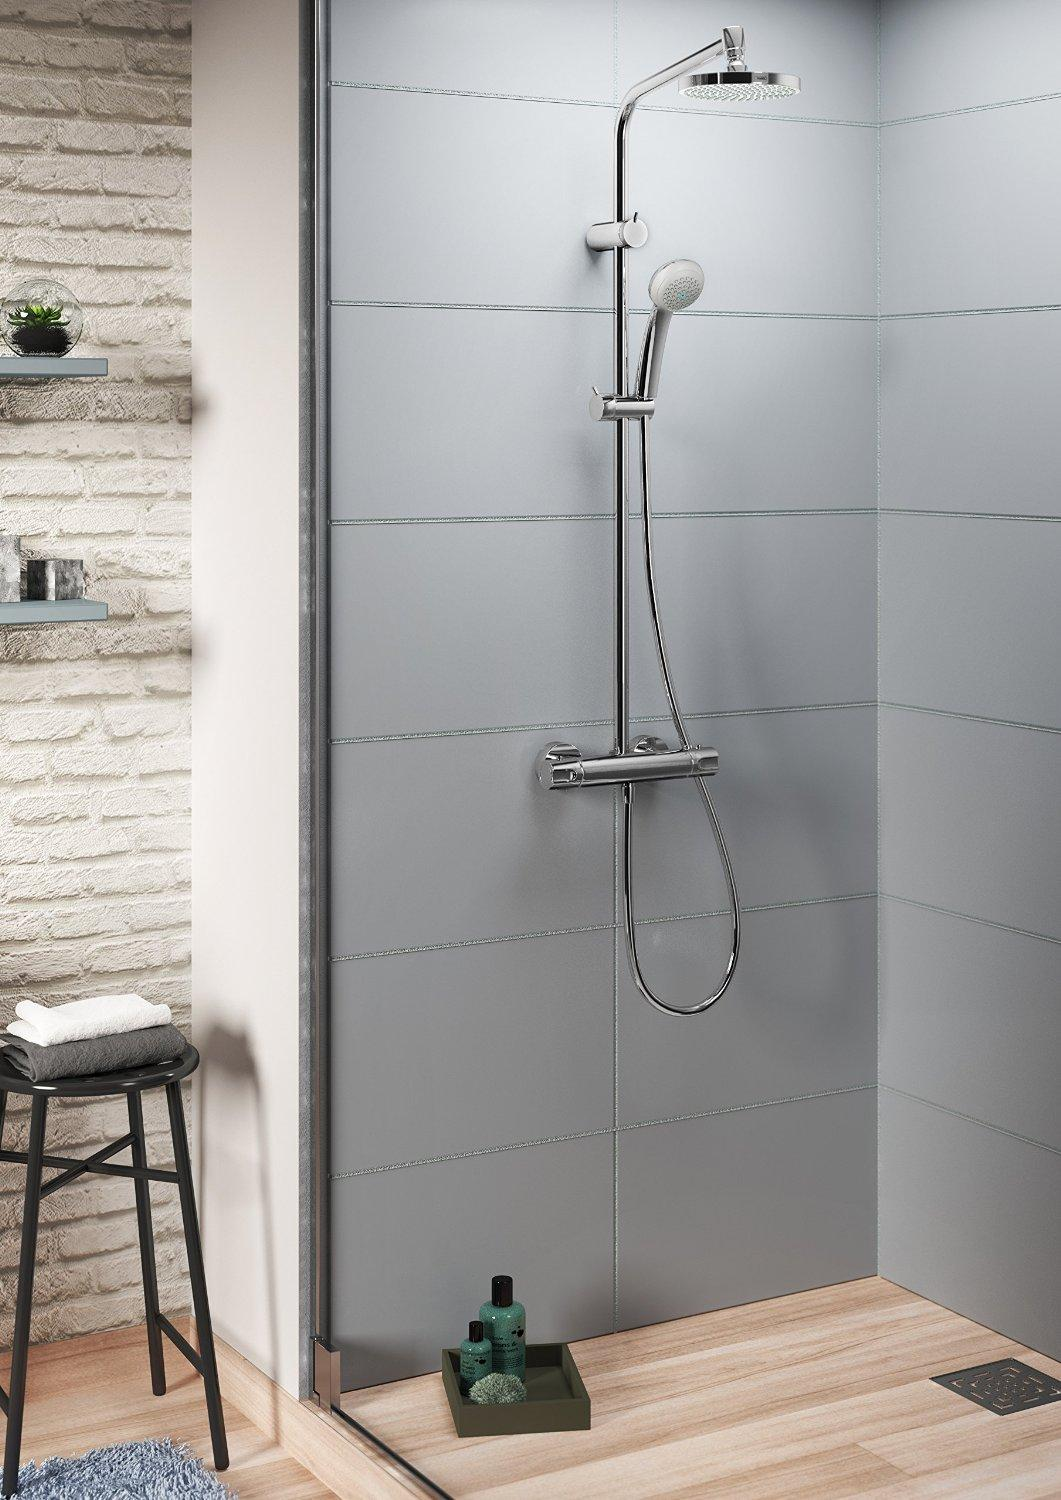 hansgrohe colonne de douche showerpipe marin 160 chrome 27206000 bricolage. Black Bedroom Furniture Sets. Home Design Ideas